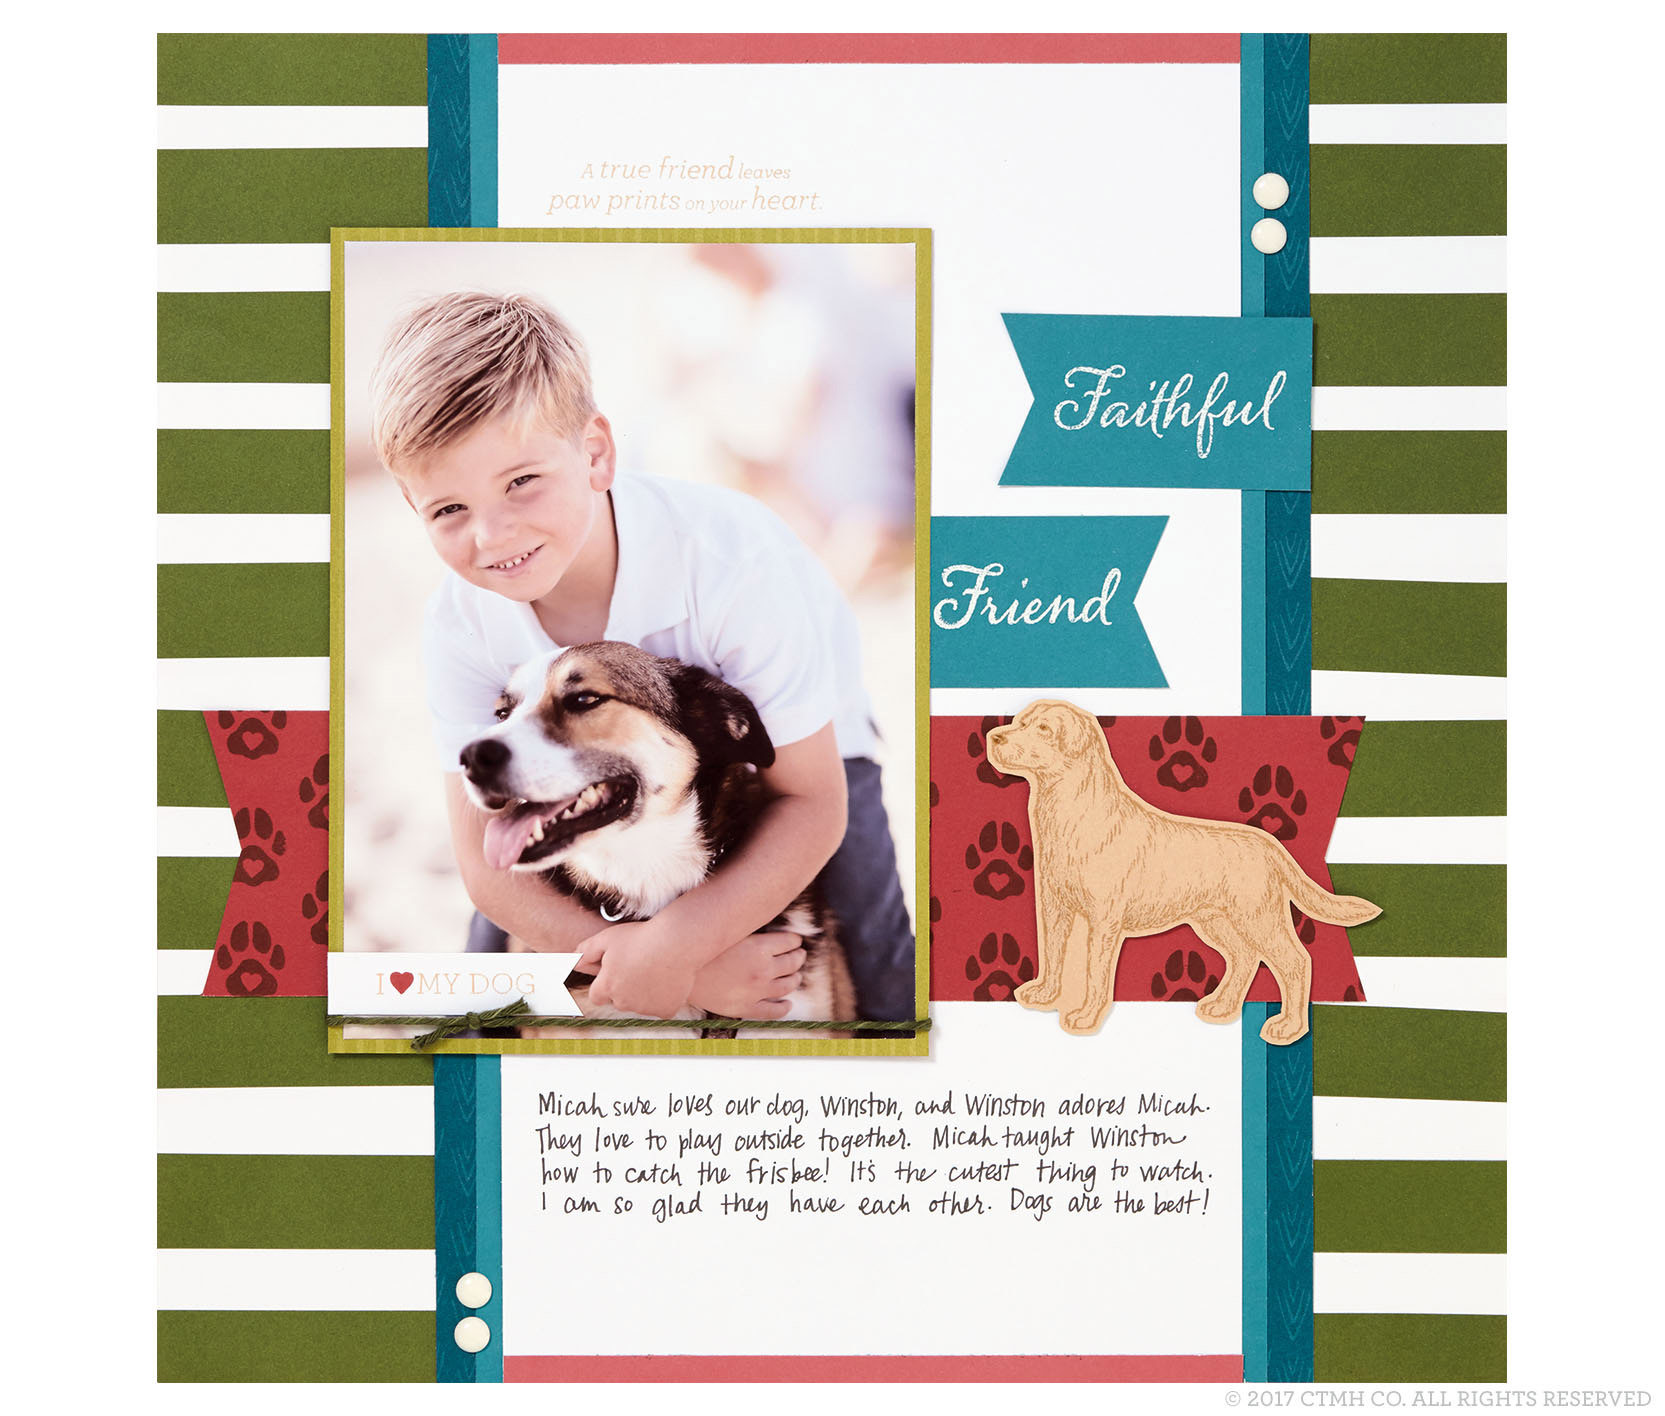 Faithful Friend Page